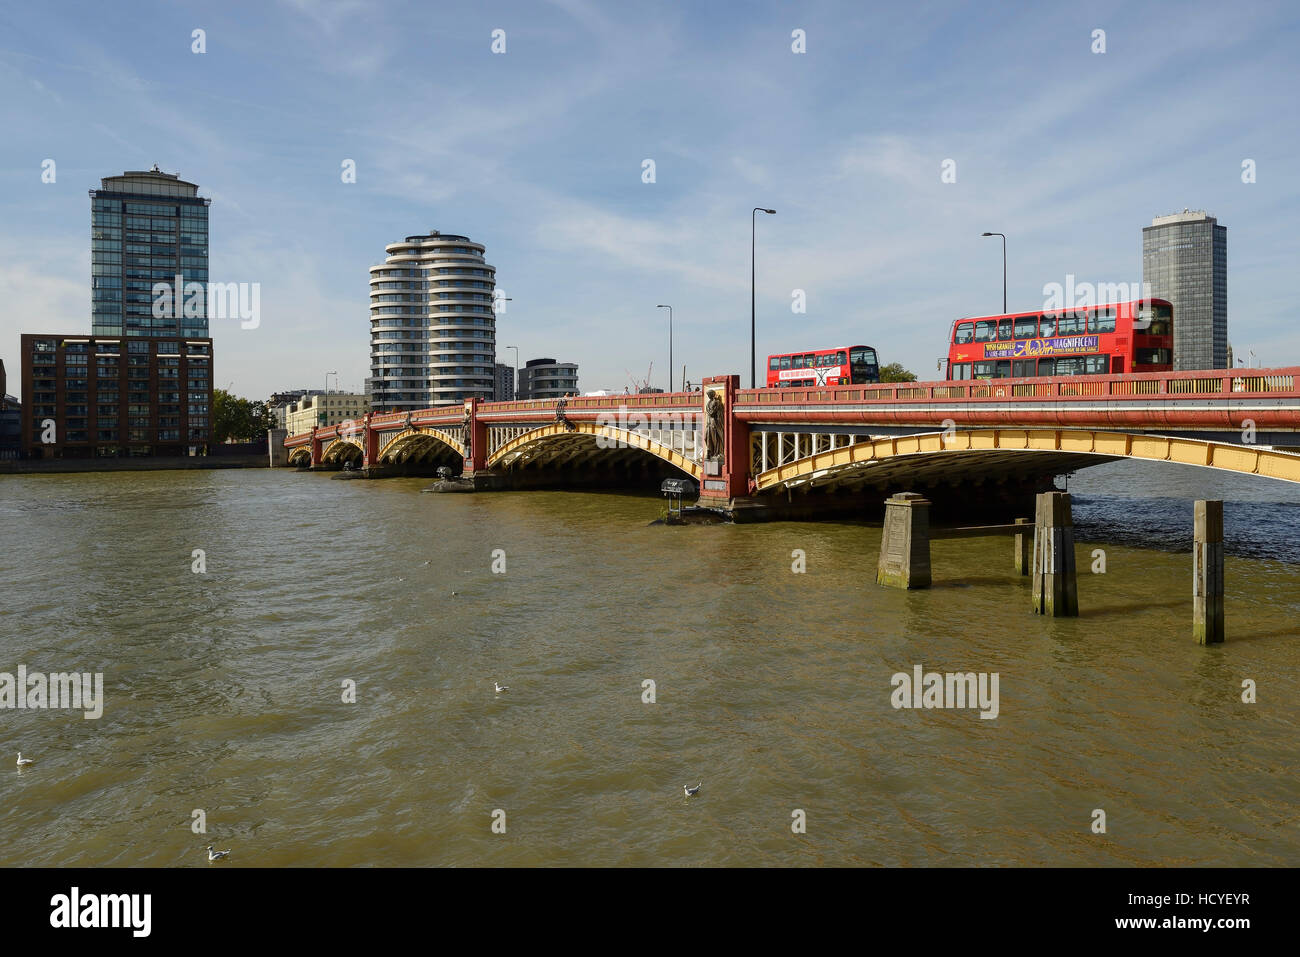 Red london buses cross Vauxhall Bridge in London towards Pimlico - Stock Image